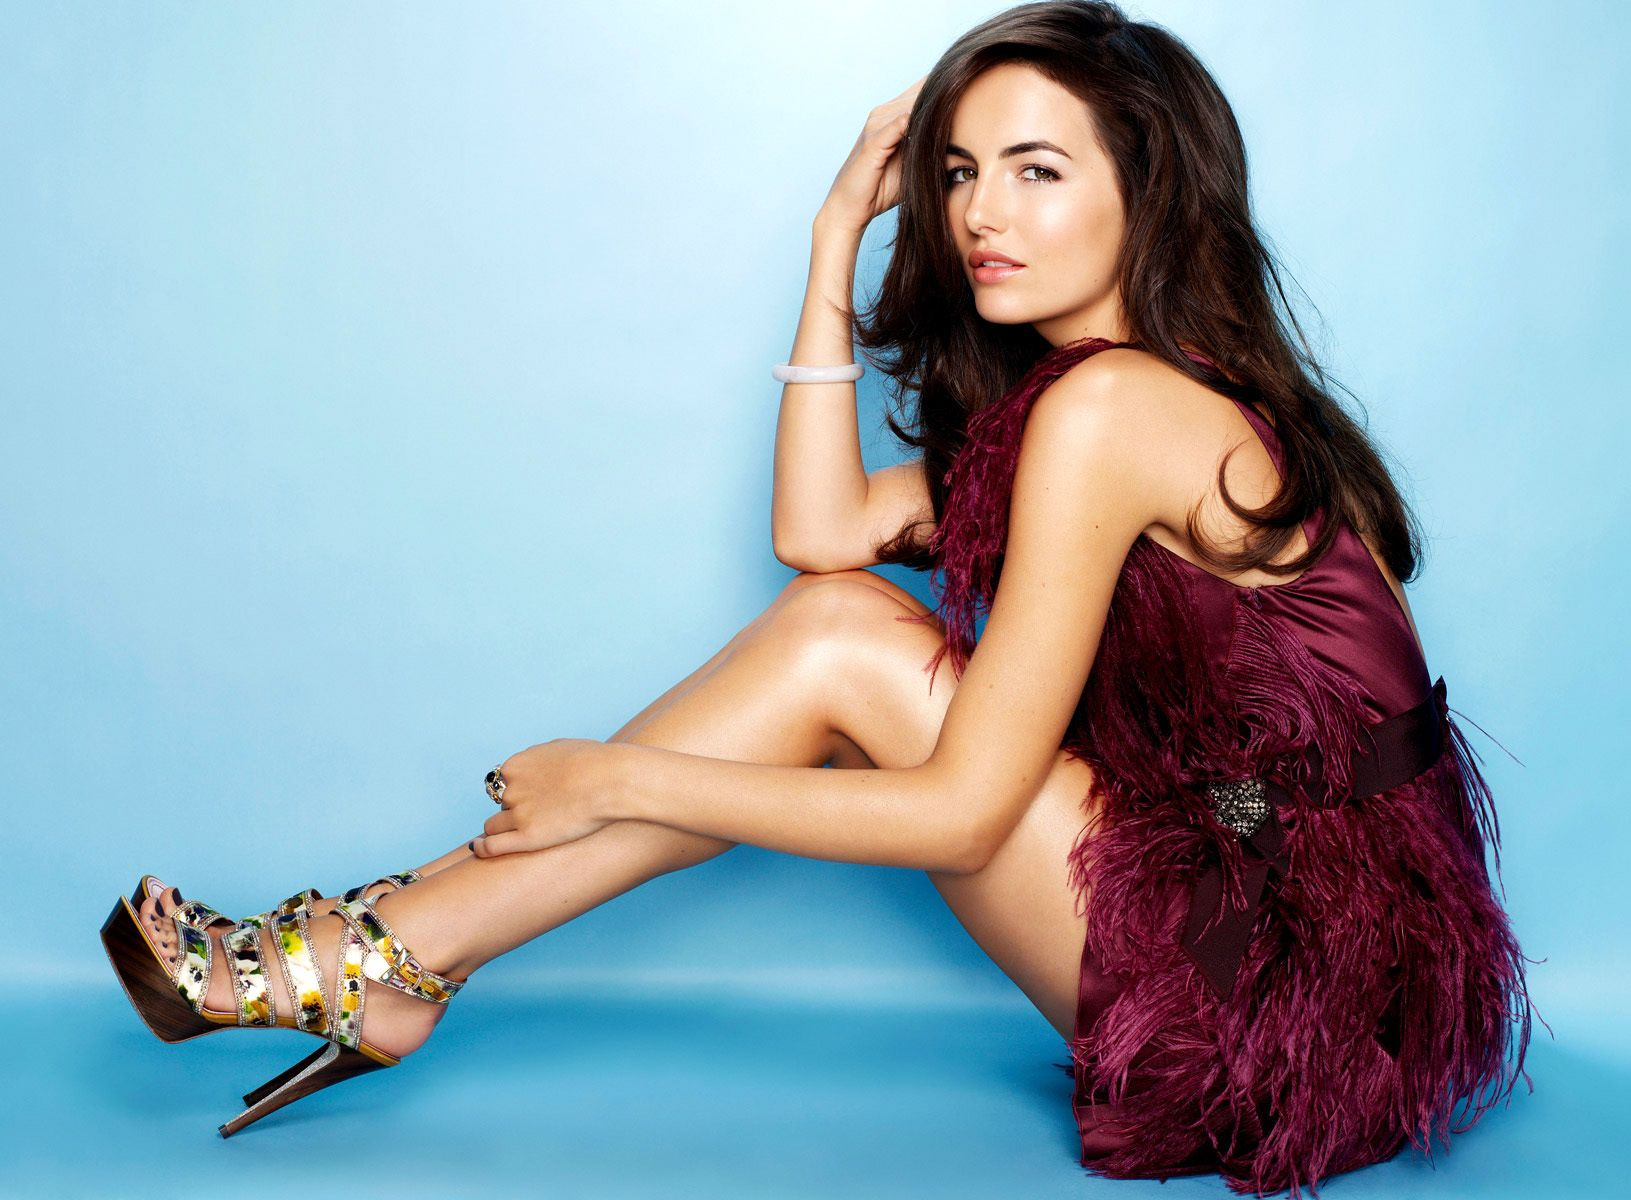 camilla belle hd wallpapers 10 #camillabellehdwallpapers